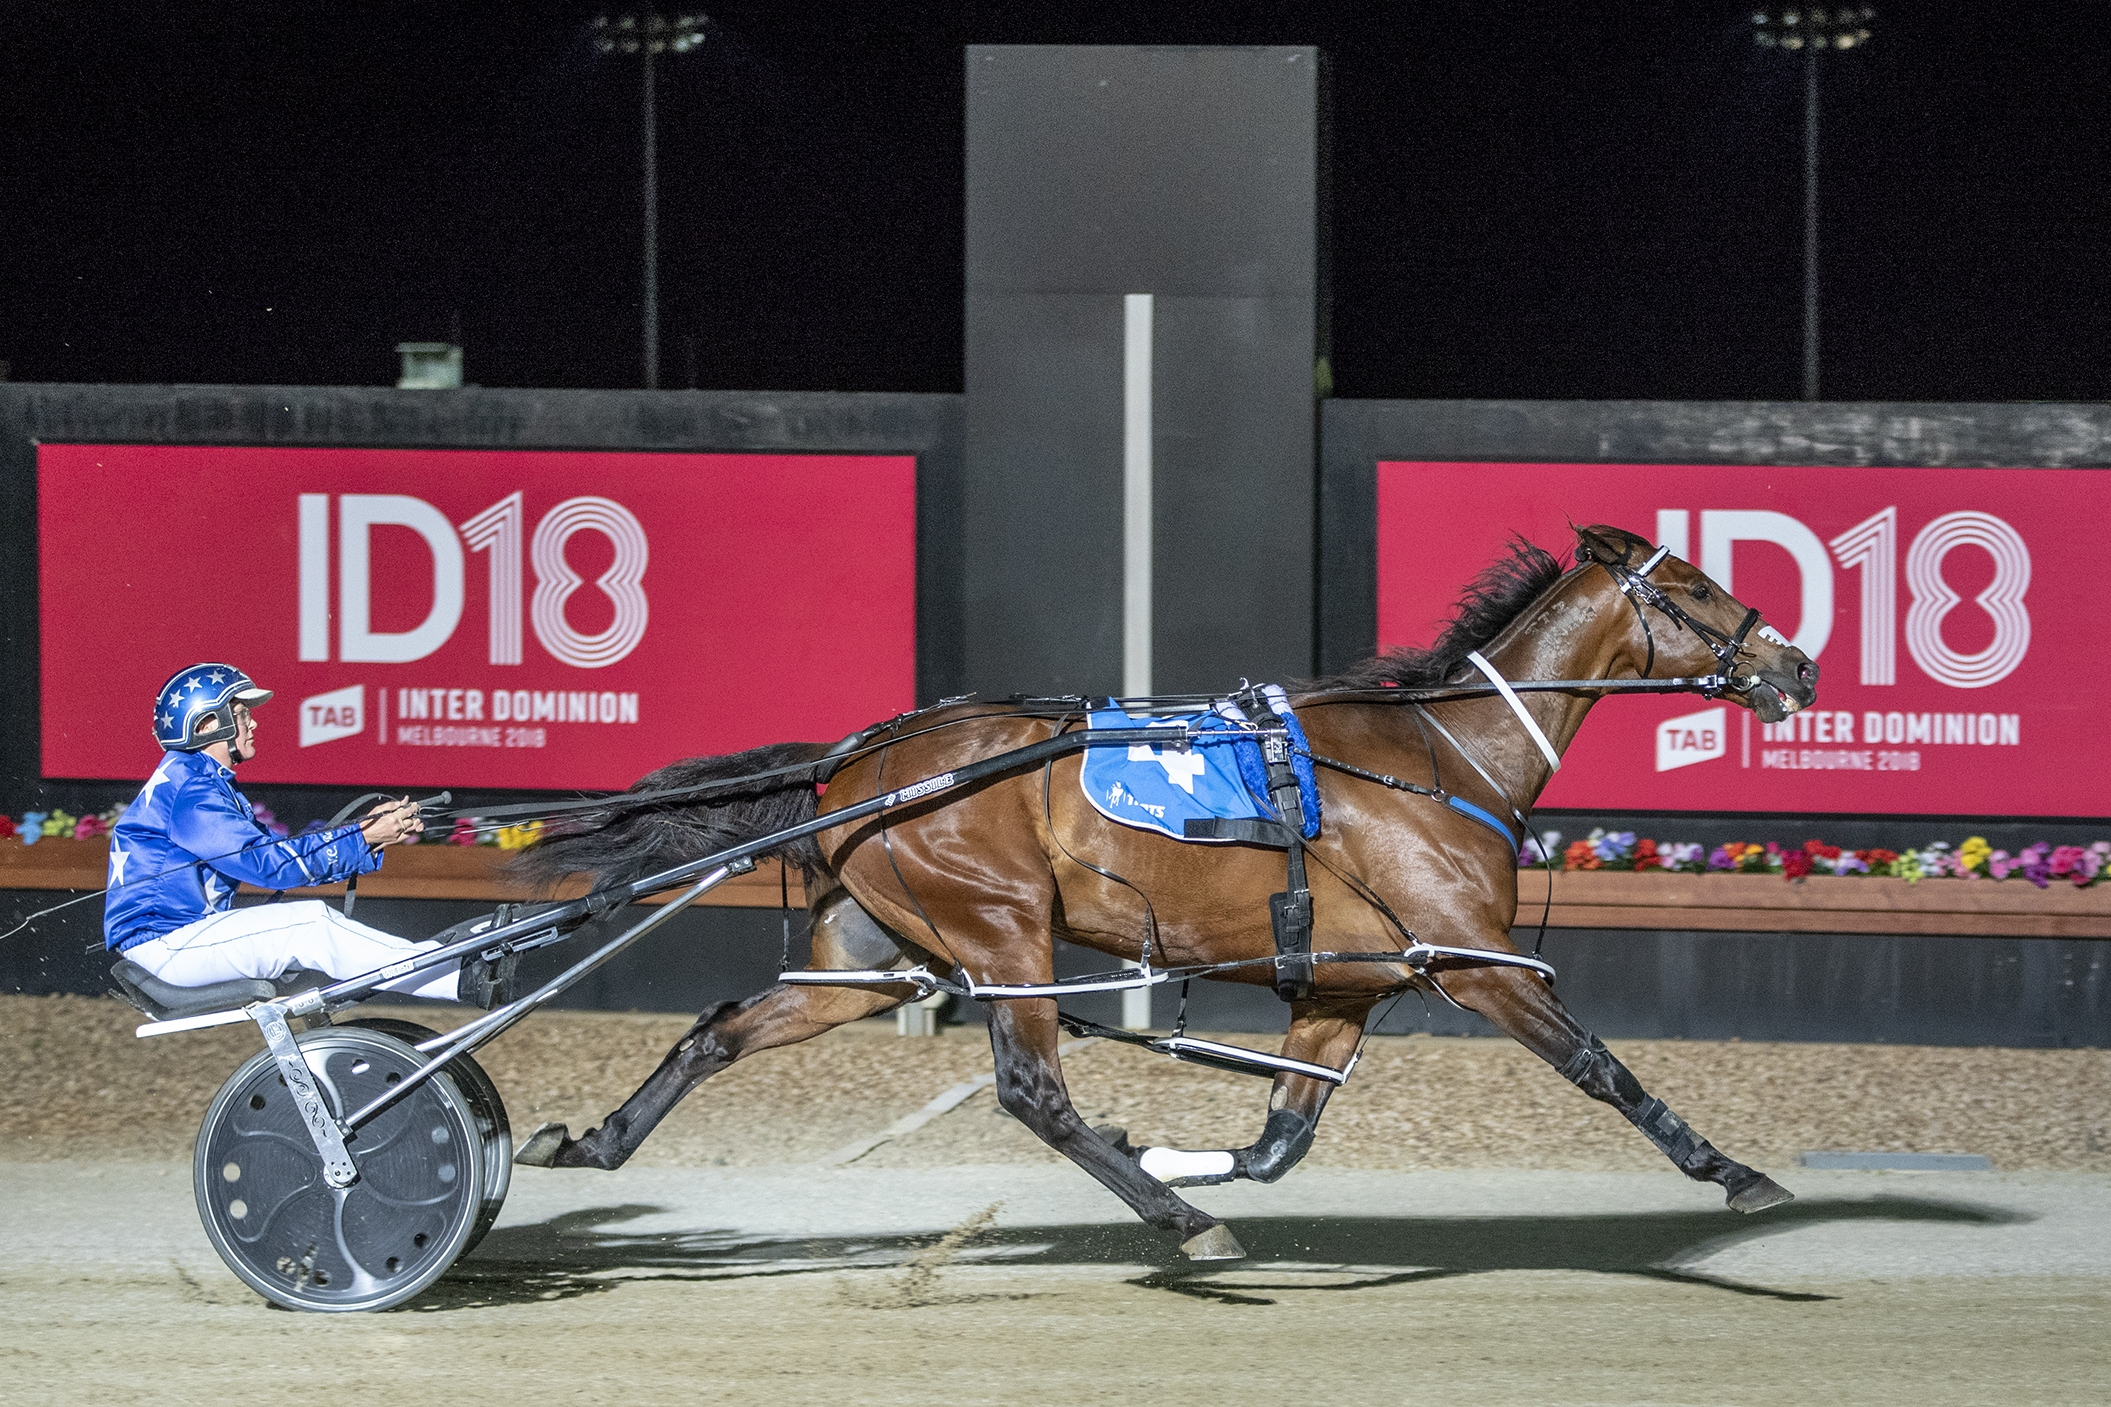 Another win for the All Stars as Natalie Rasmussen guides Cruz Bromac to an electrifying TAB ID18 first-round heat win at Tabcorp Park Melton.